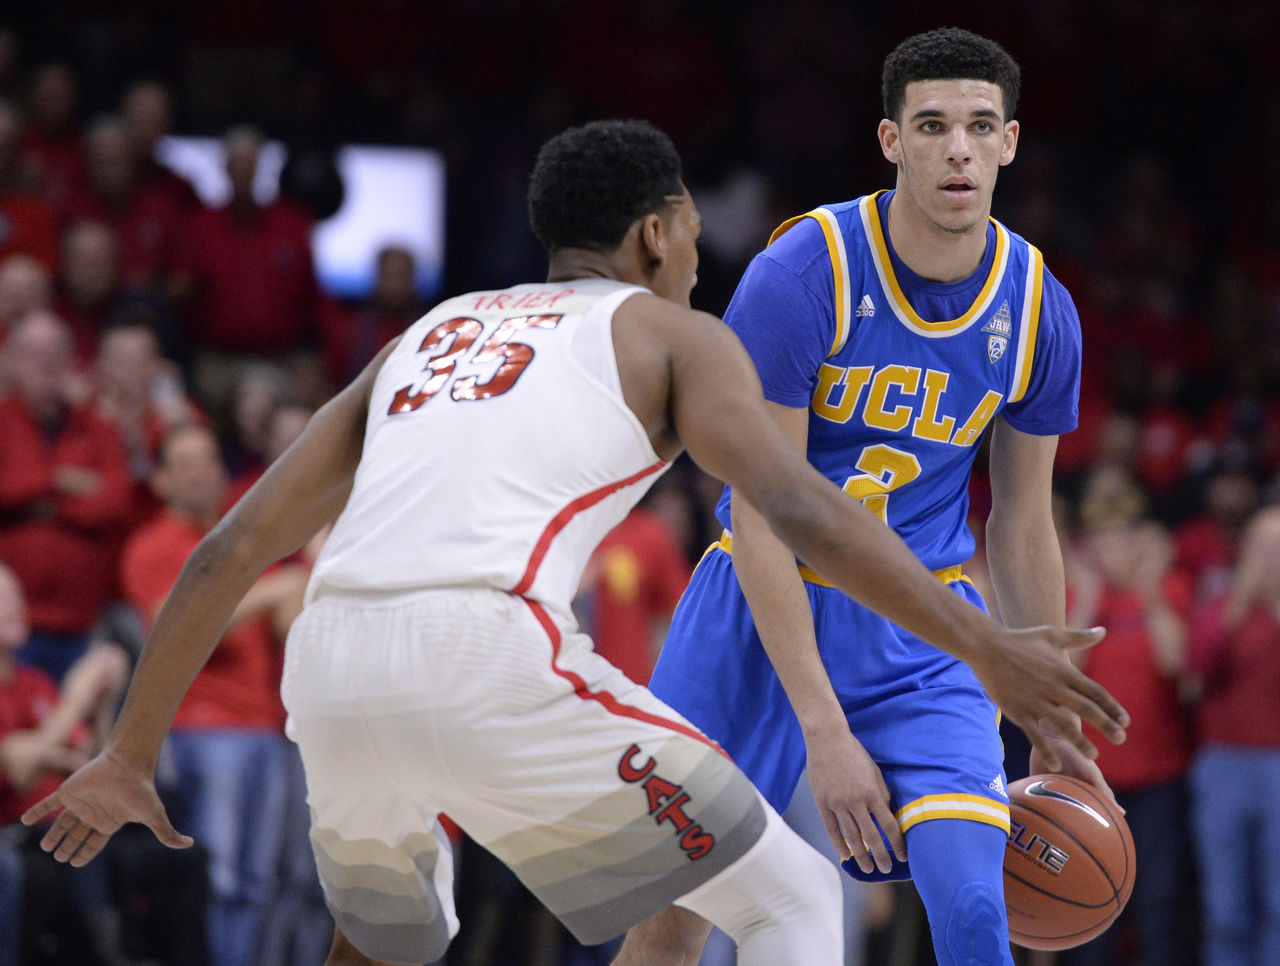 Cropped 2017 02 26t021426z 1104742706 nocid rtrmadp 3 ncaa basketball ucla at arizona